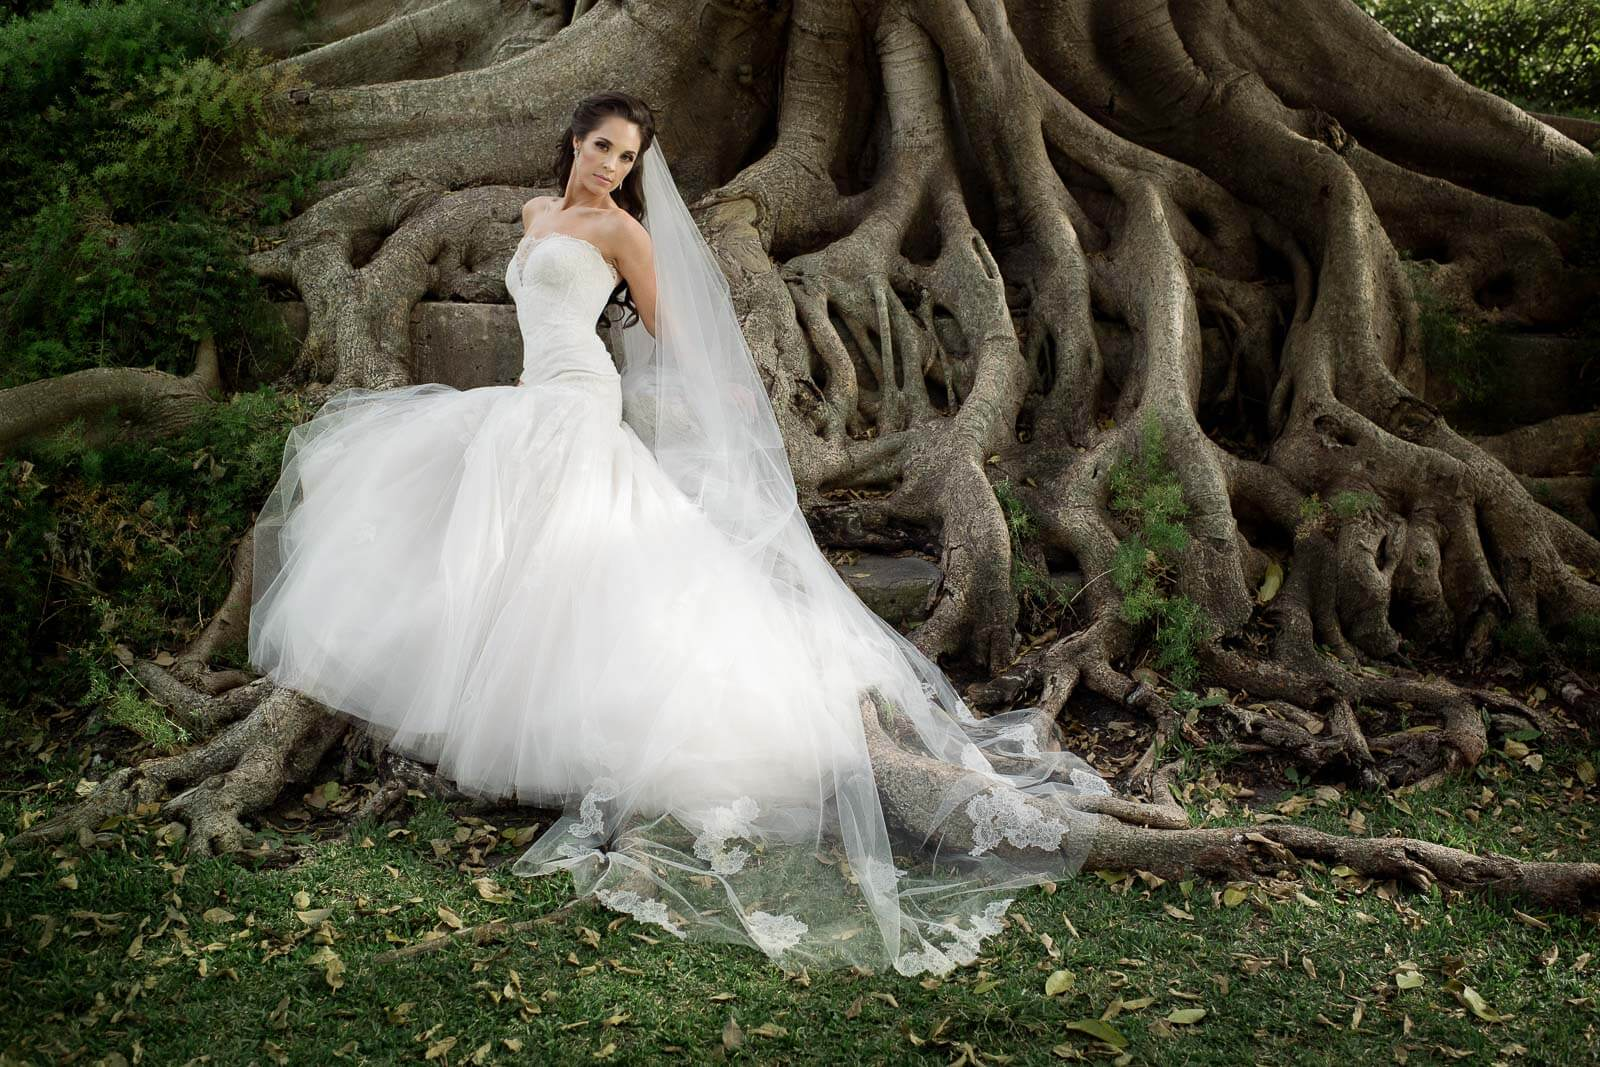 Bride pose against mammoth tree roots - photo by Maloman Studios